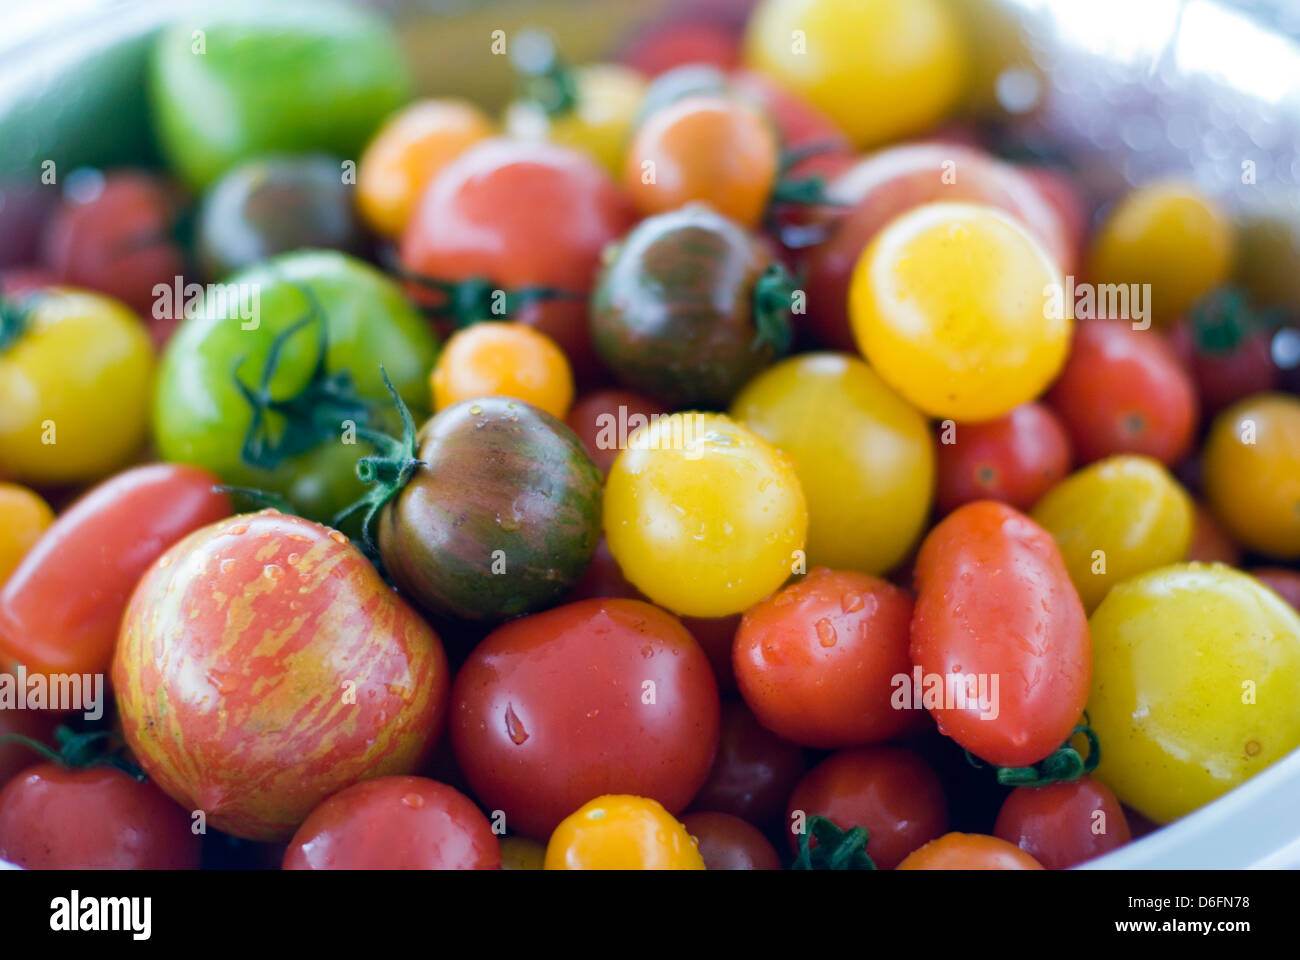 Tomato mixed Varieties / yellow,green,striped - Stock Image